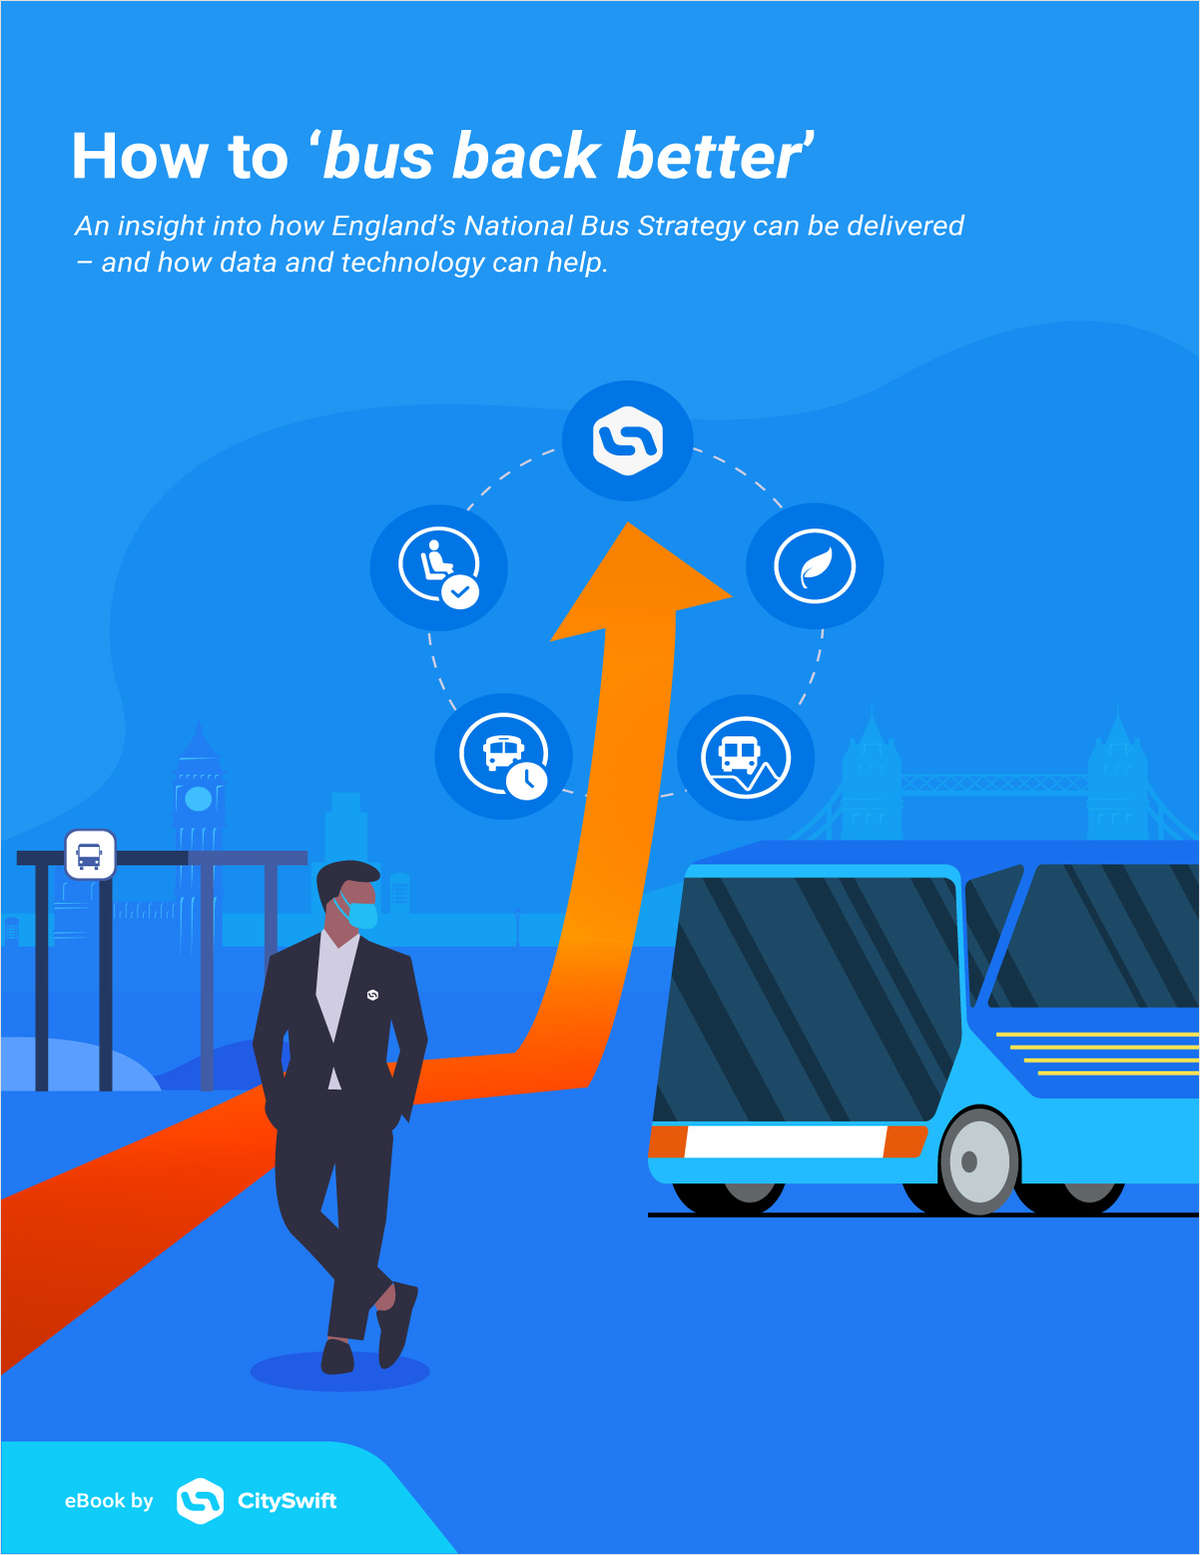 Ebook: How to 'bus back better'